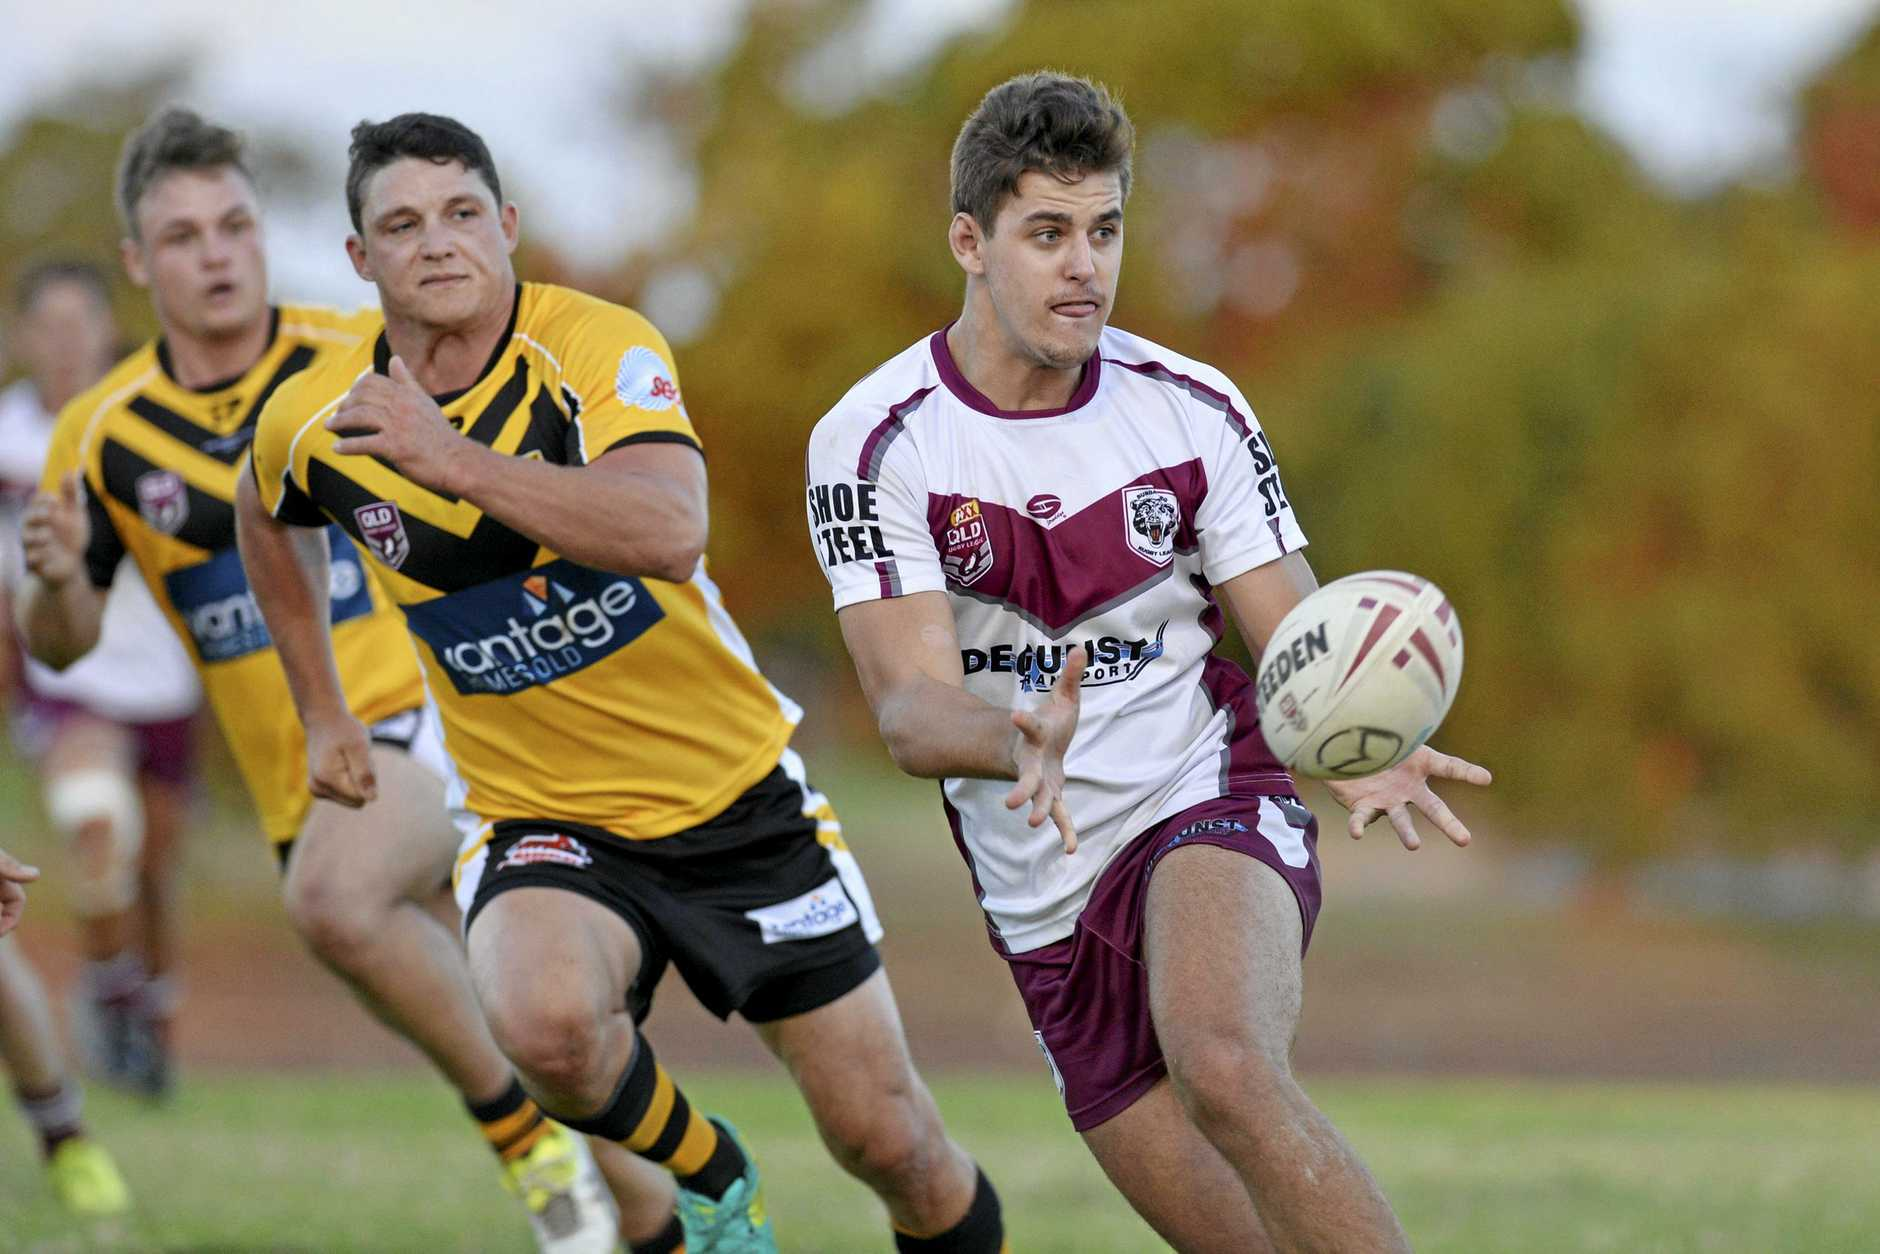 REPRESENT: Trent Seeds for Bundaberg Bears against Sunshine Coast Falcons in a 47th Battalion rugby league carnival fixture in May.